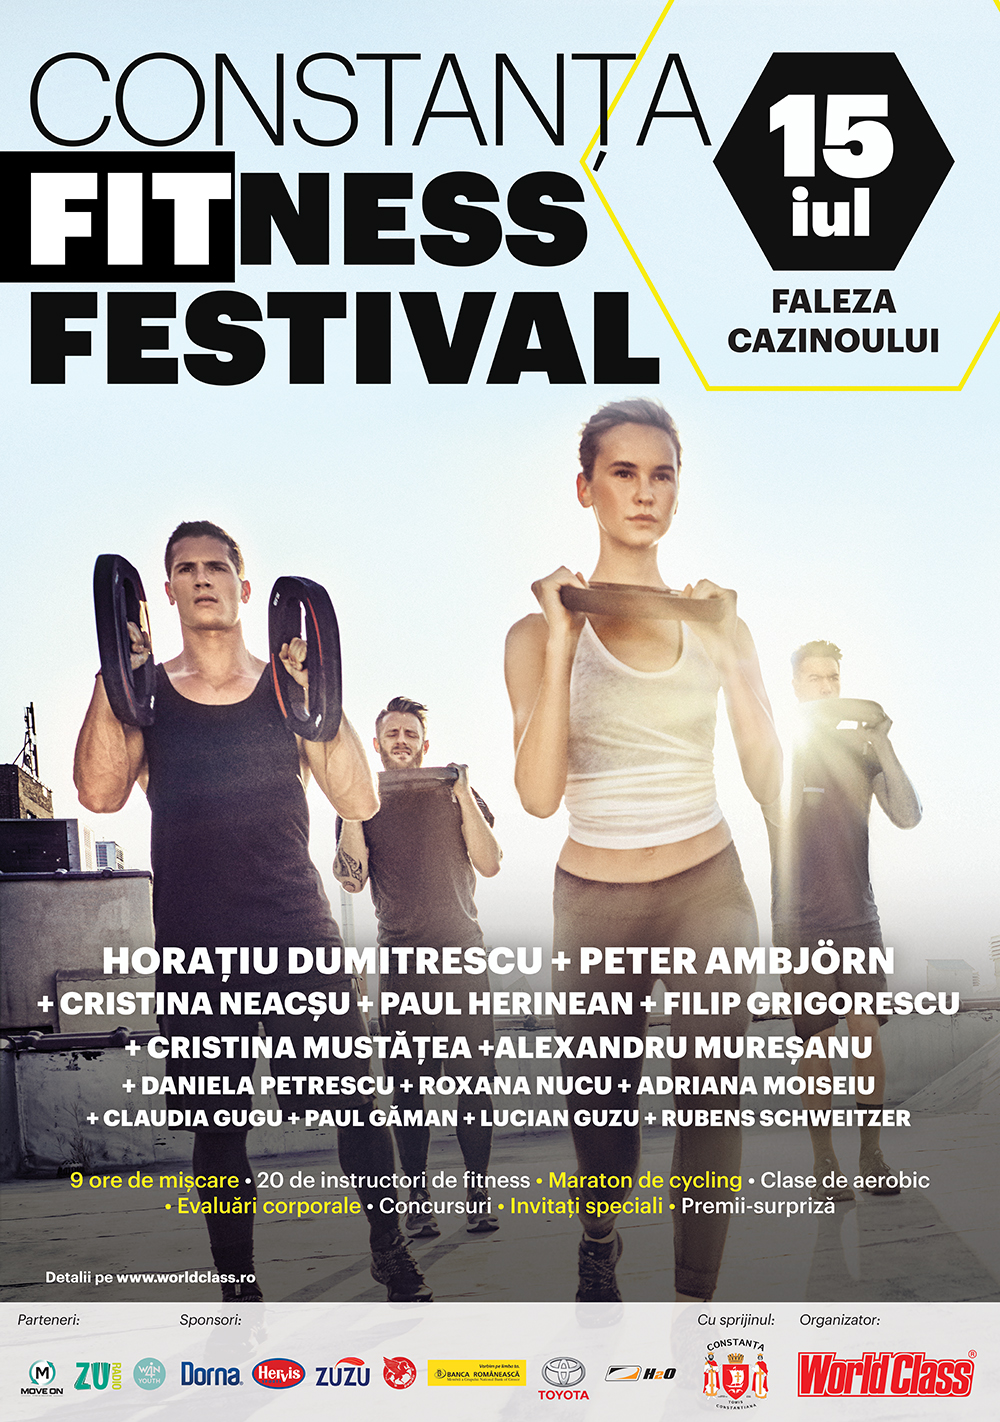 3001_p1109_fitness festival_CT_poster 70x100 _2 fin